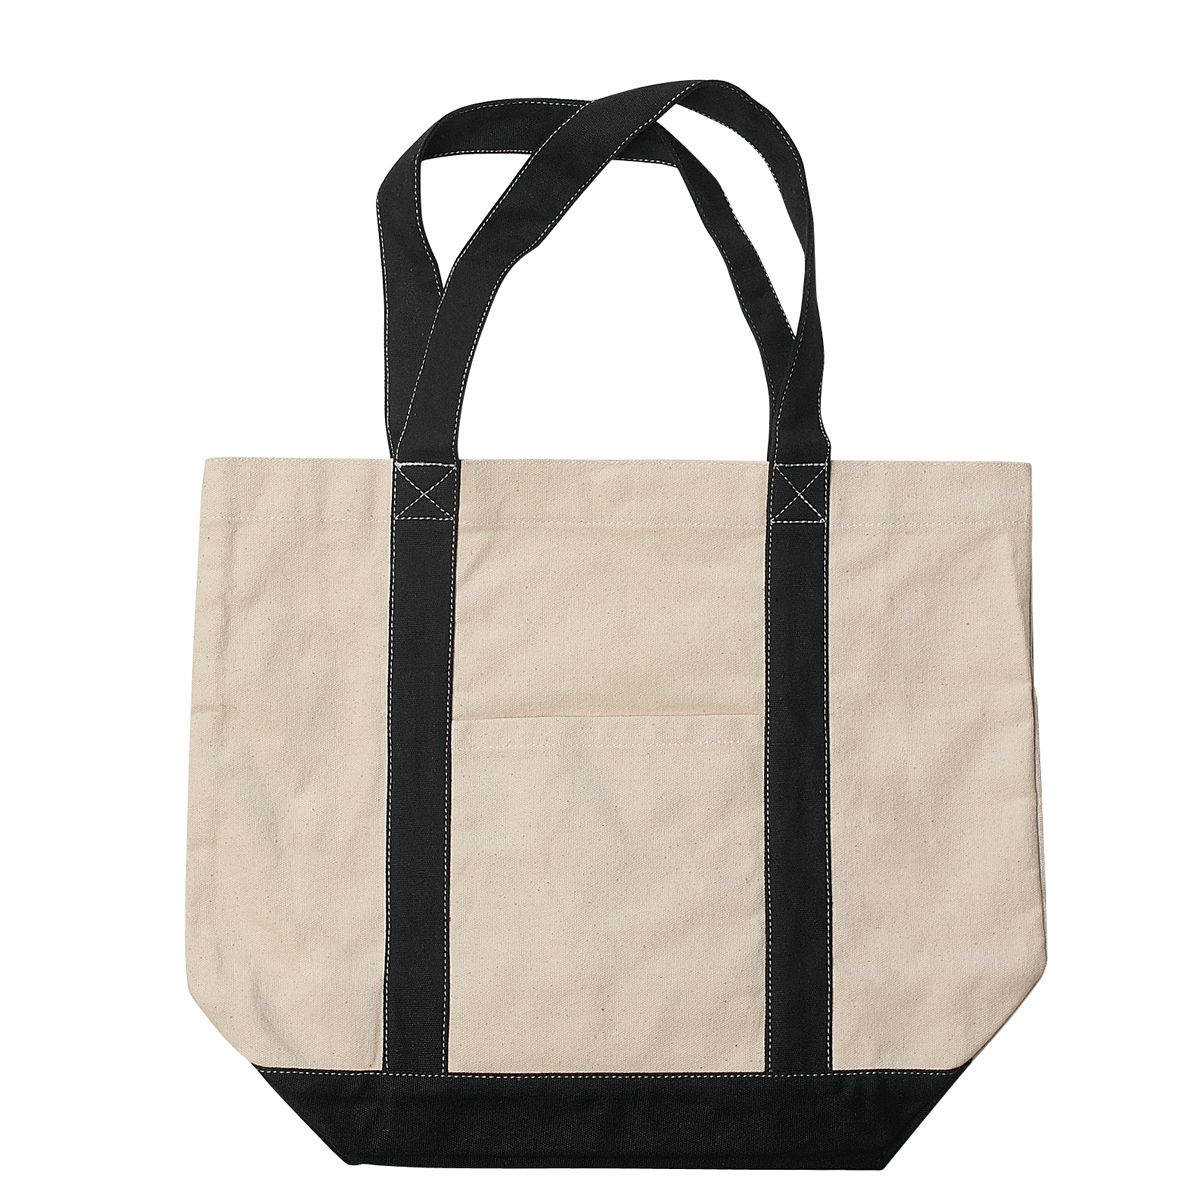 Purchasing paper carrier bags on wholesale cost